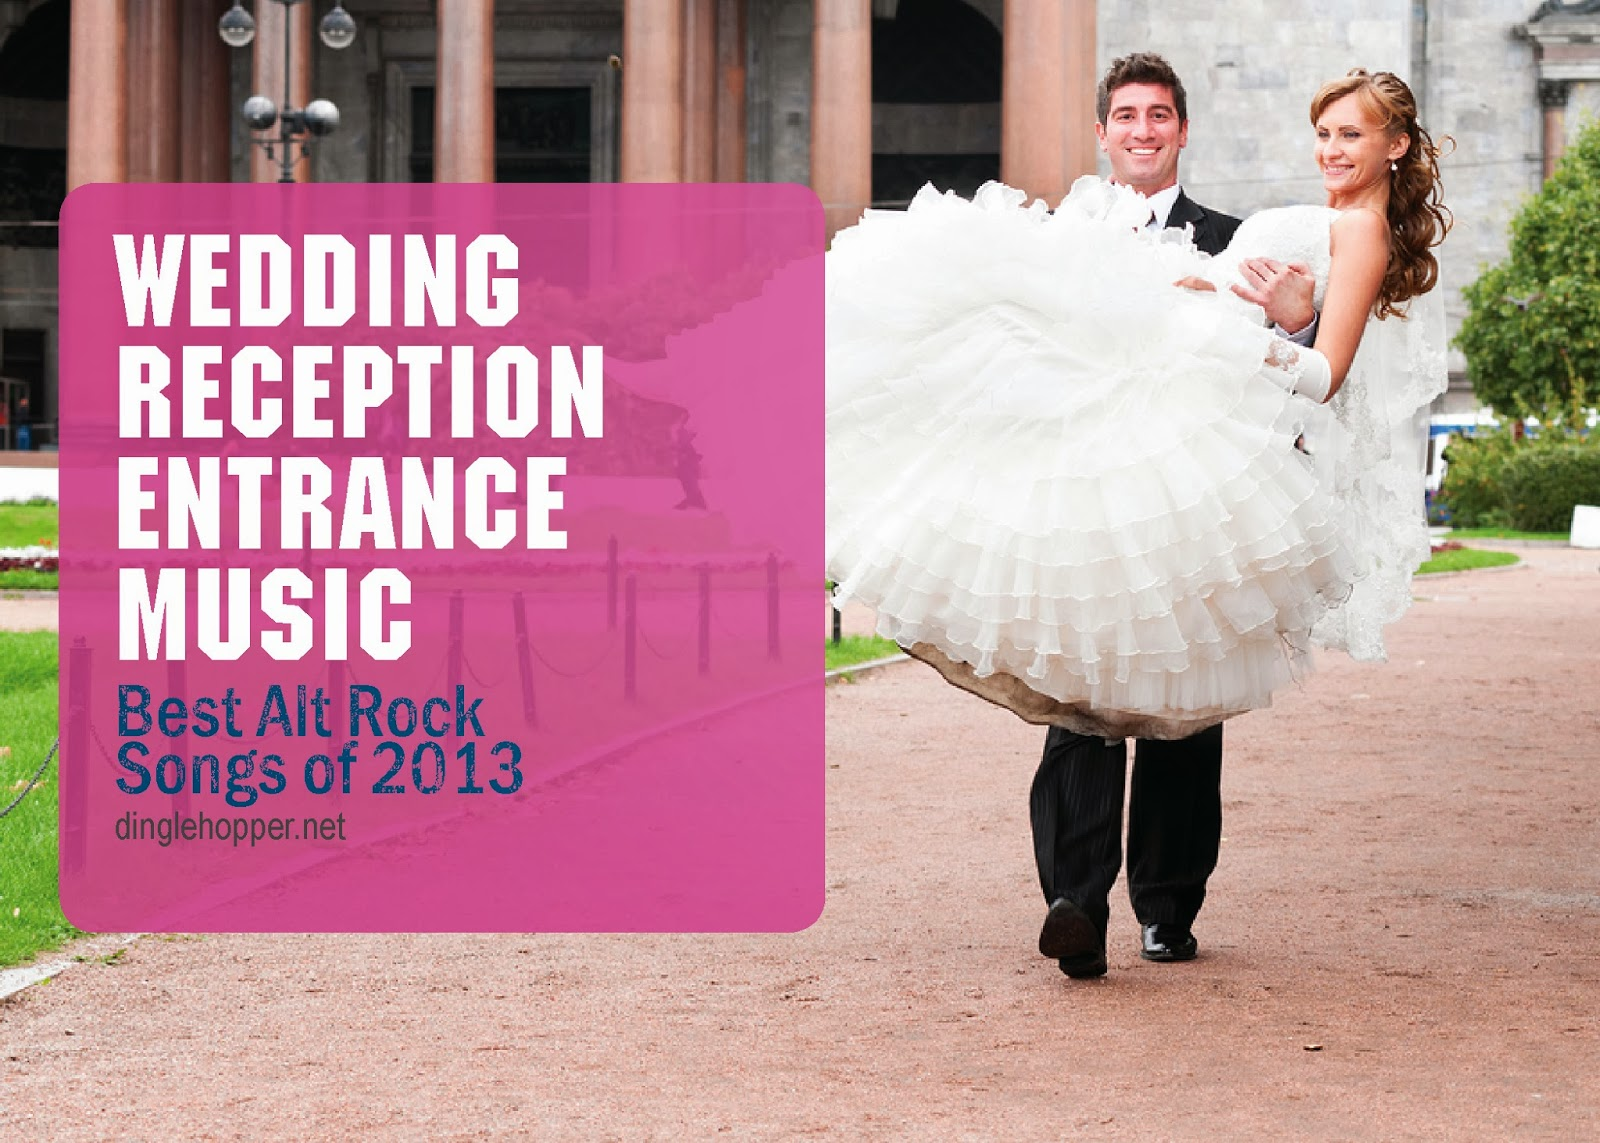 Best Wedding Reception Entrance Songs 2014 List